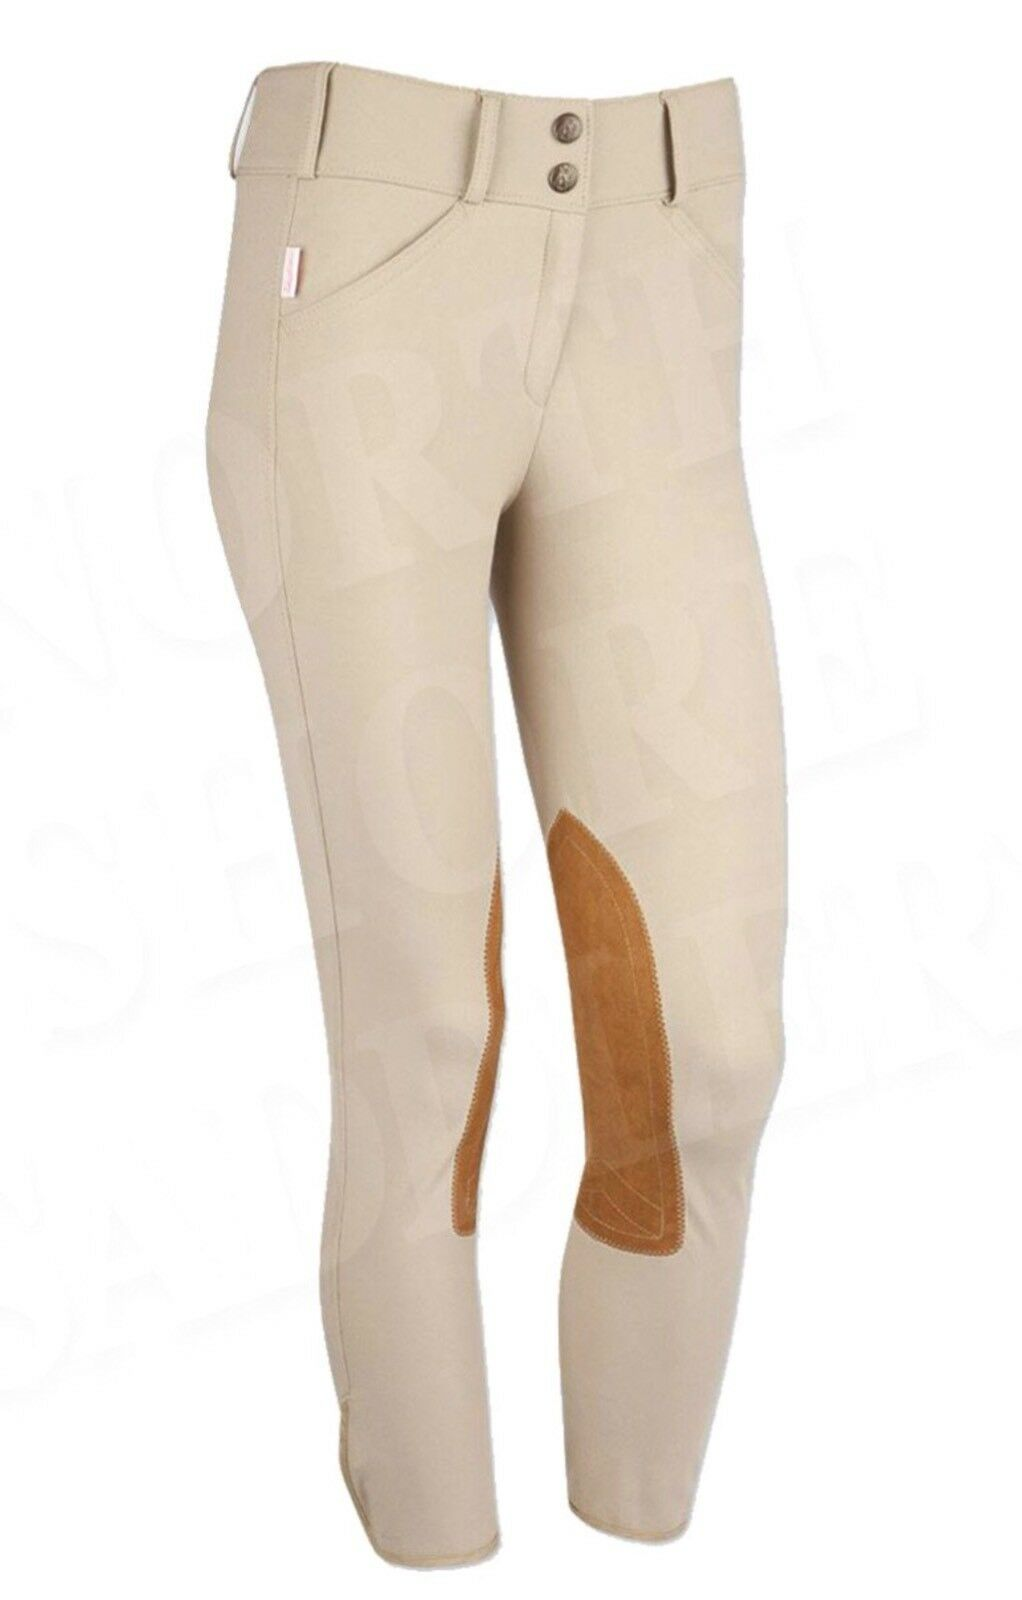 The Tailored Sportsman Girl's Trophy Hunter Breeches Tan